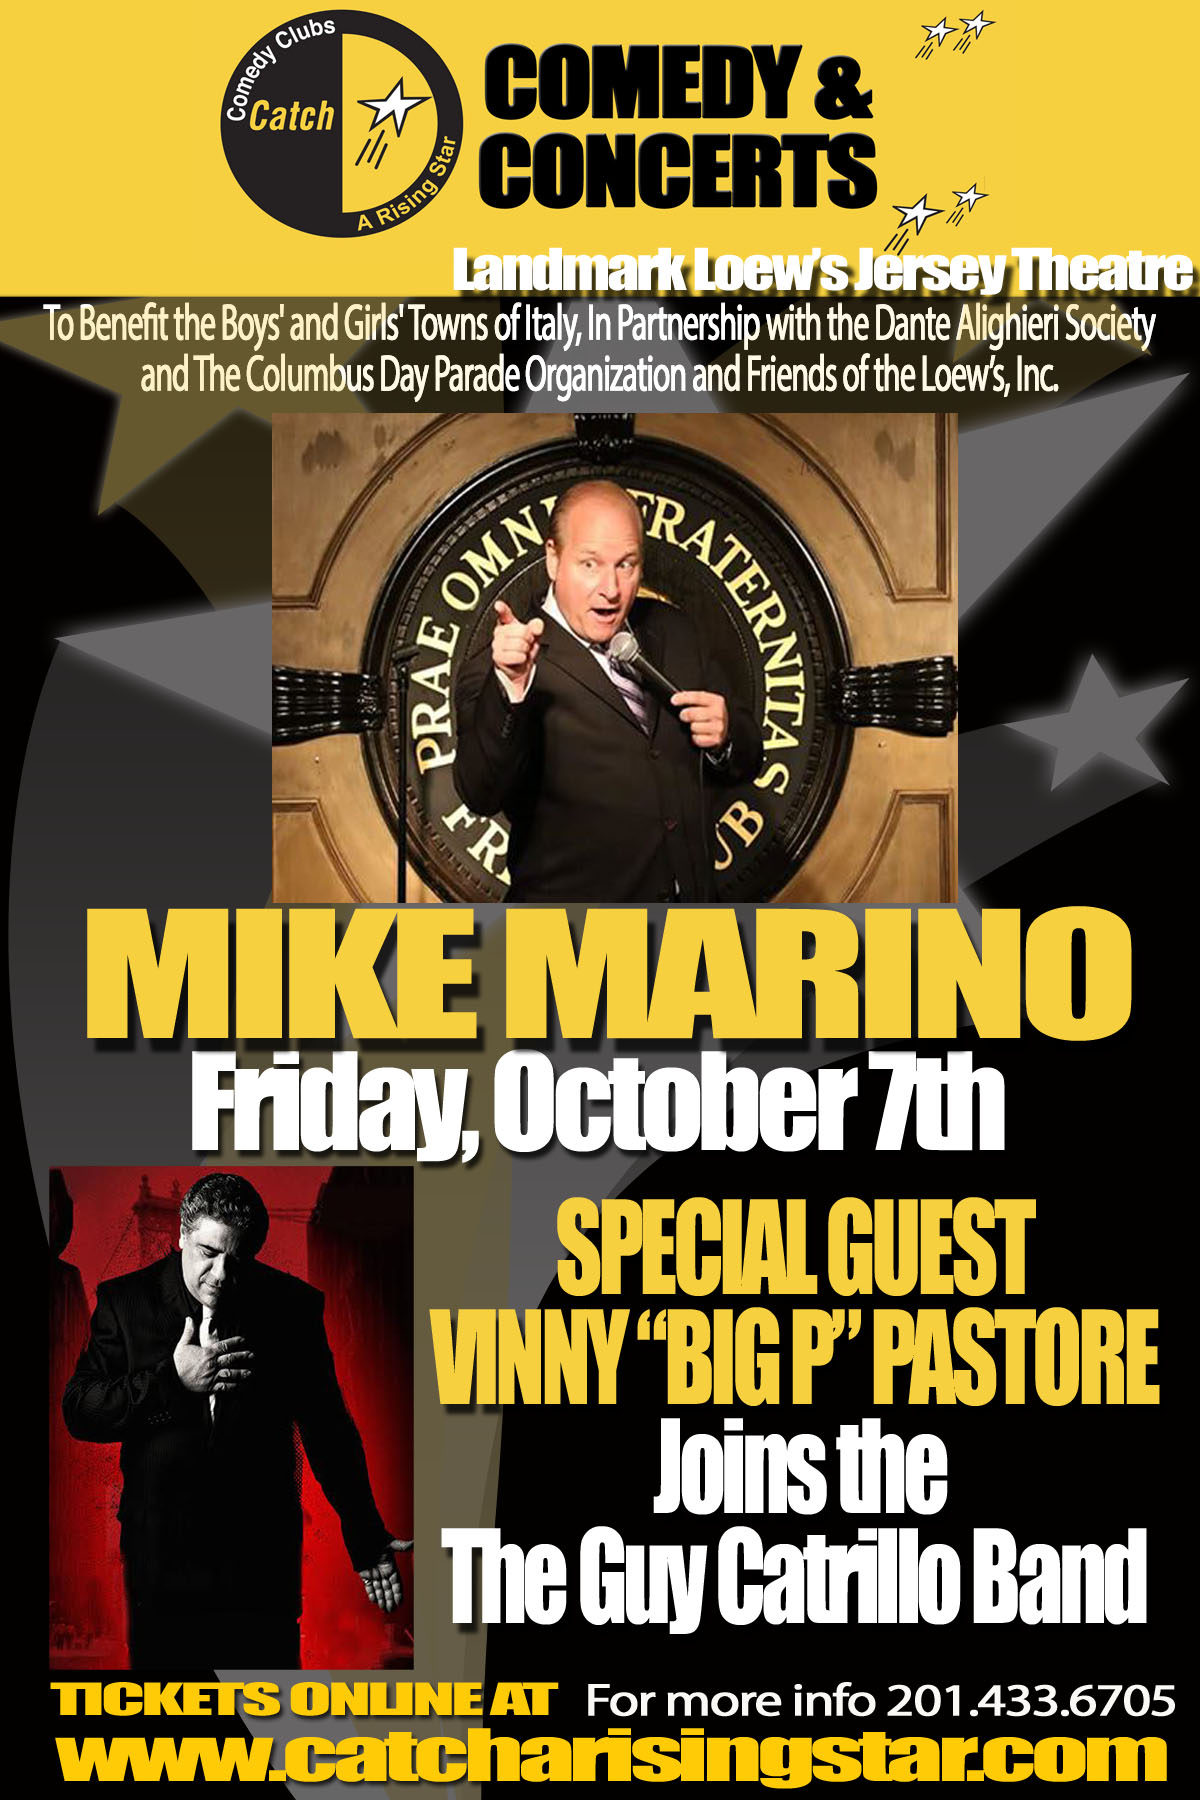 Mike Marino, Vin 'Big P' Pastore and the Guy Catrillo Band